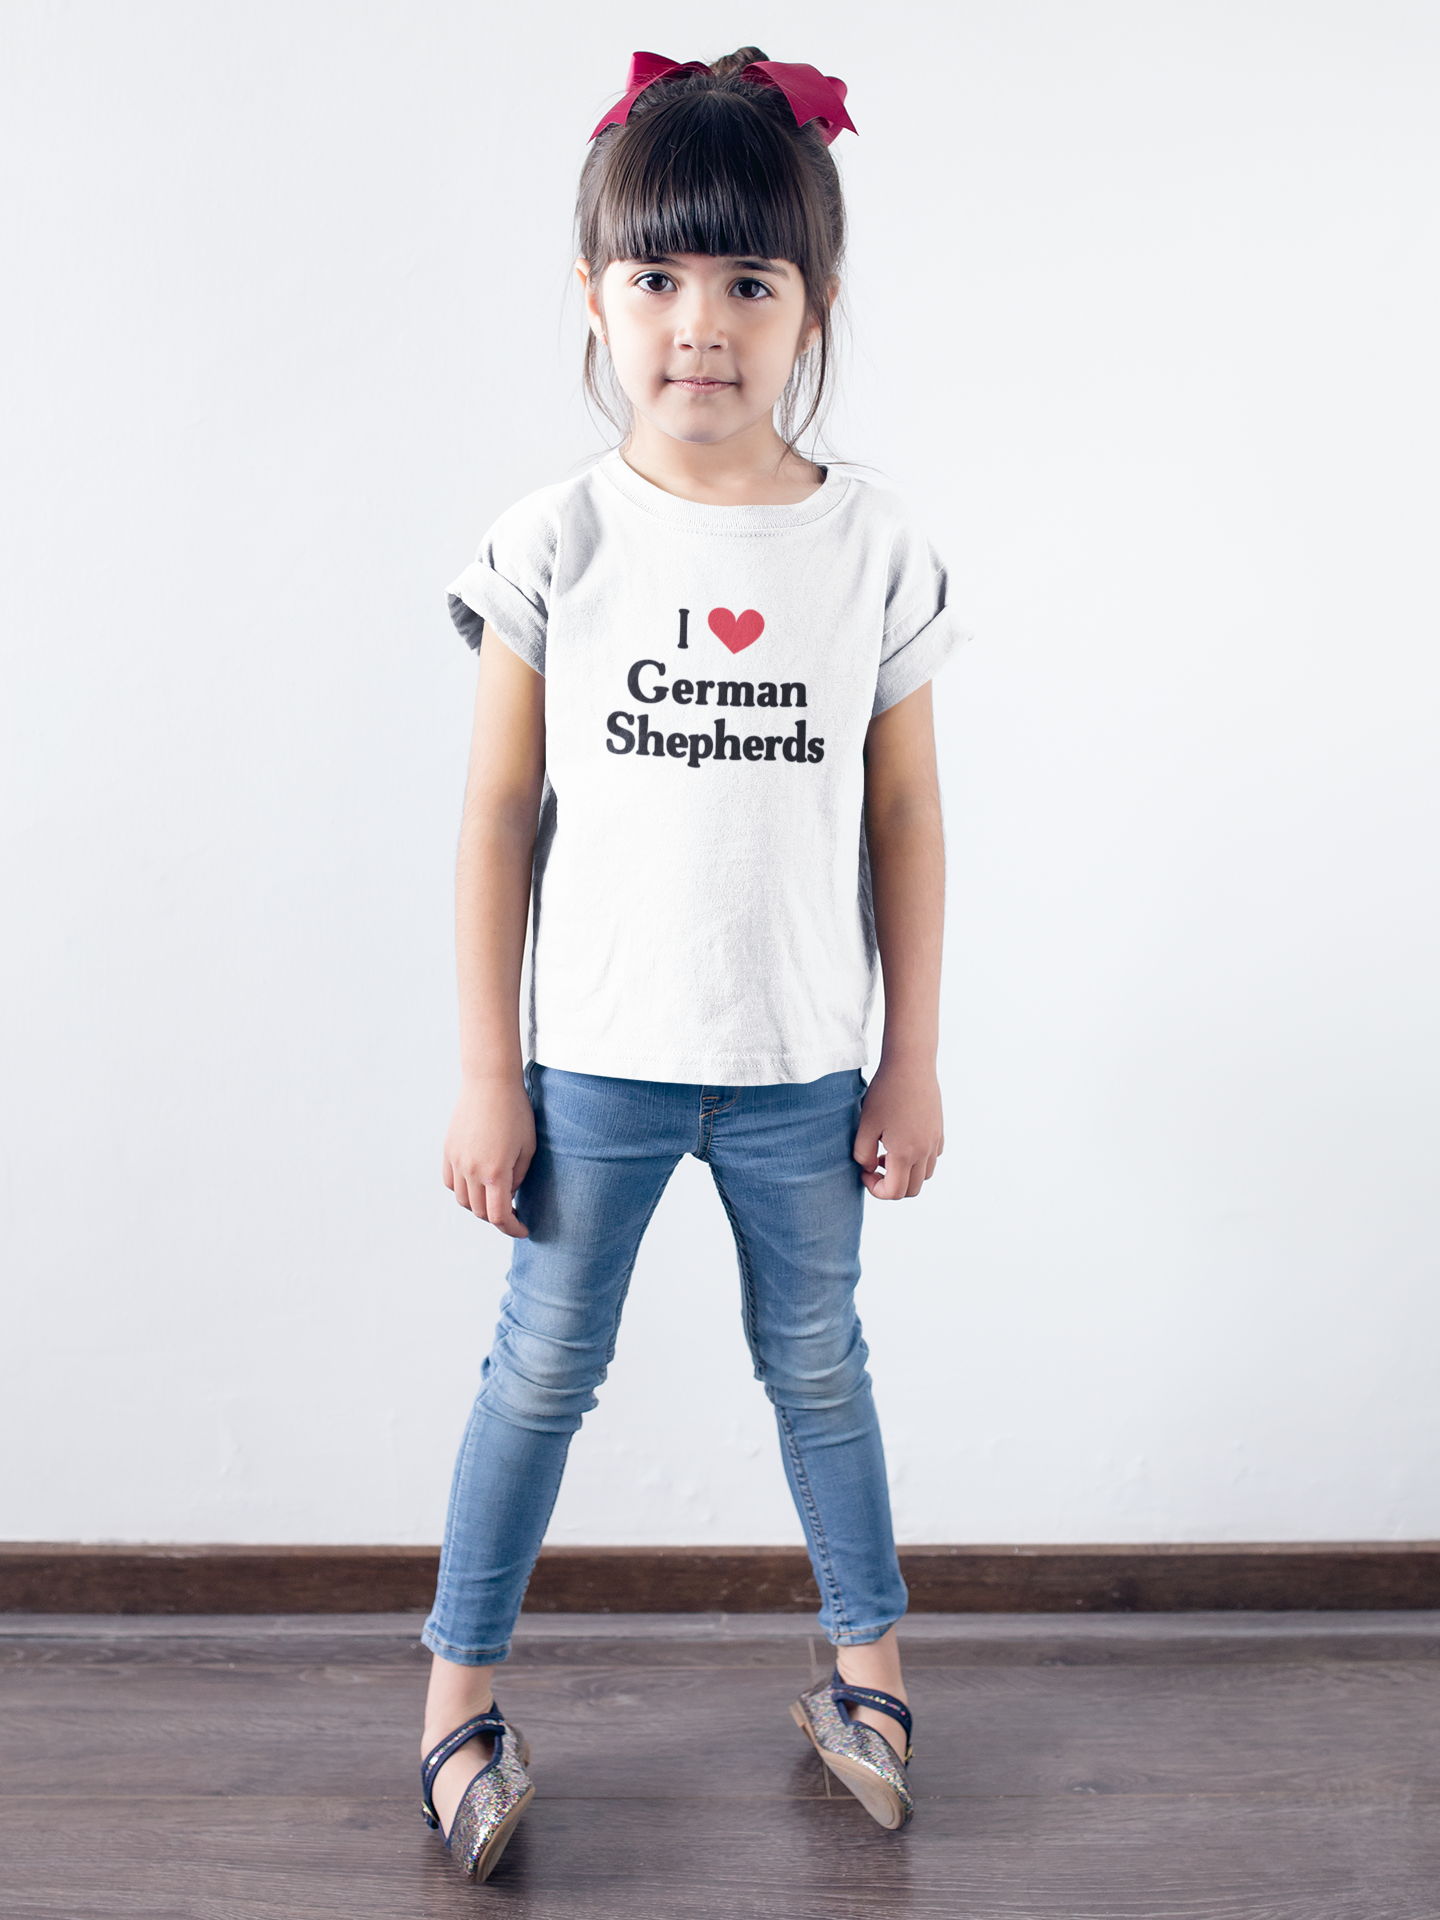 Shepard Love Baby Girls Short-Sleeved Shirt Clothes